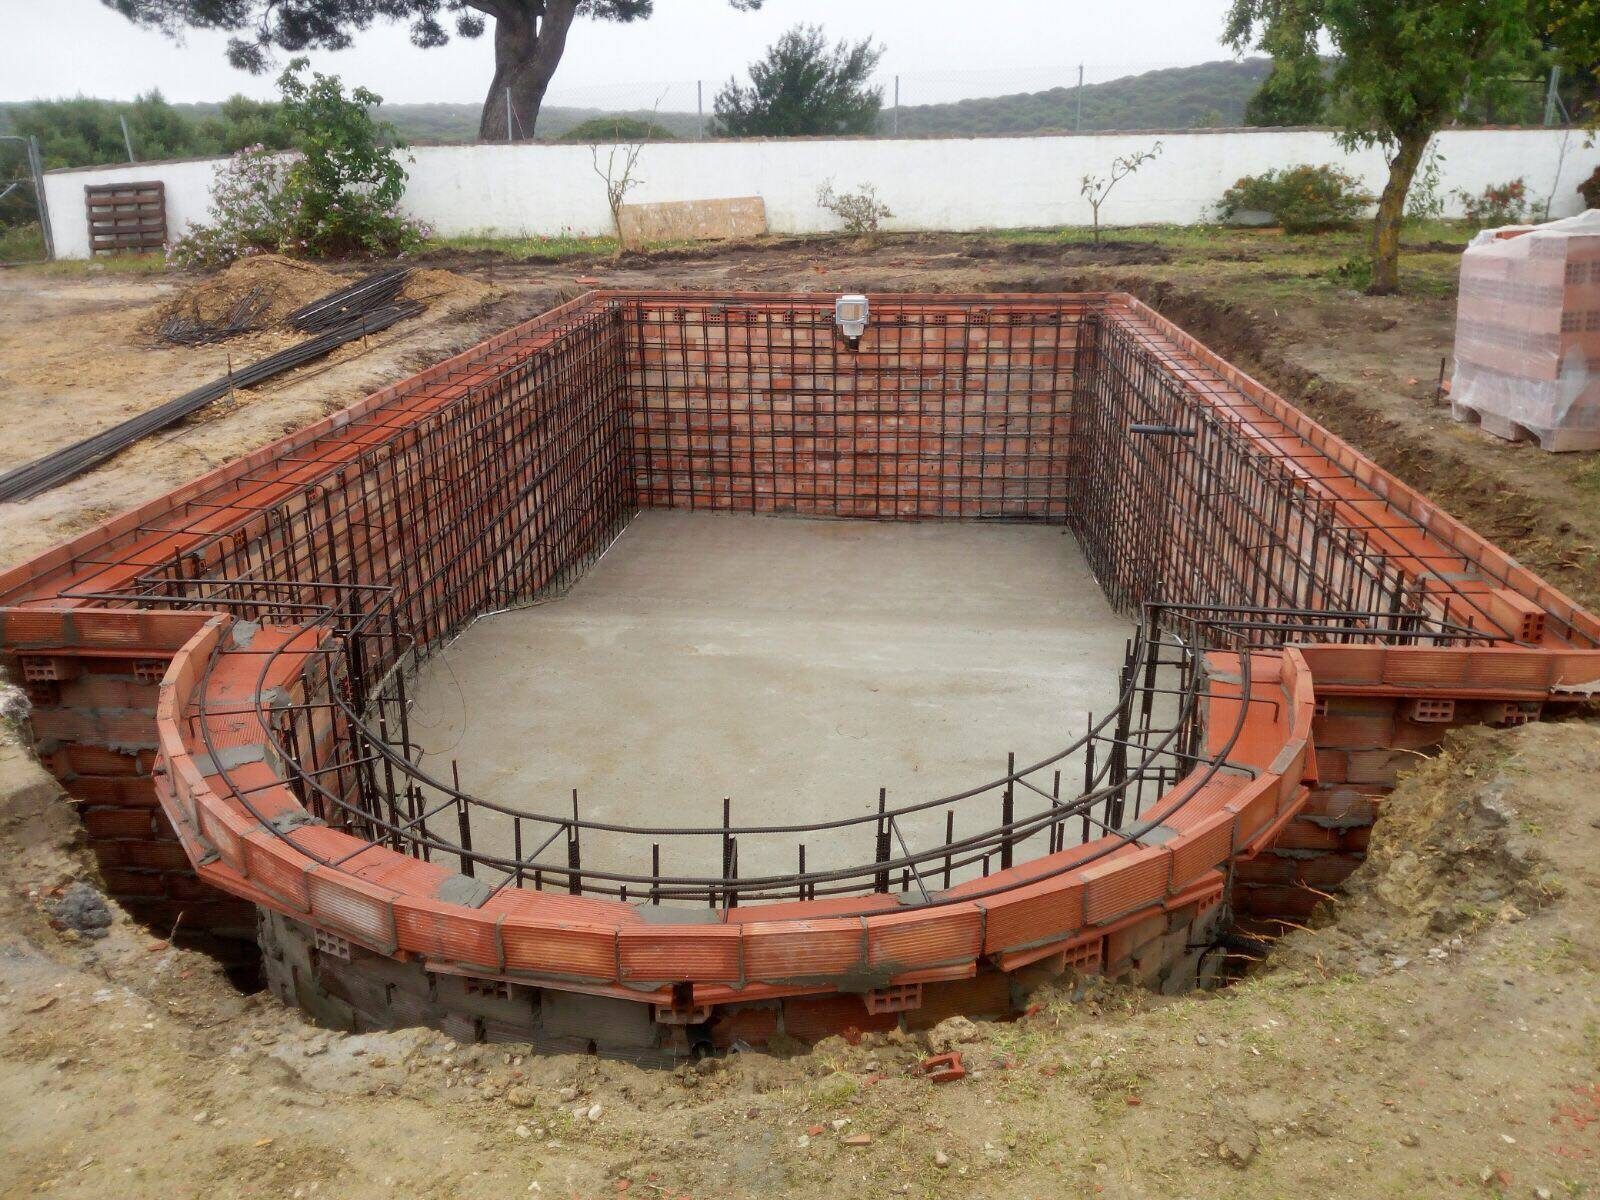 Brand new pool construction barbate cadiz for New pool construction